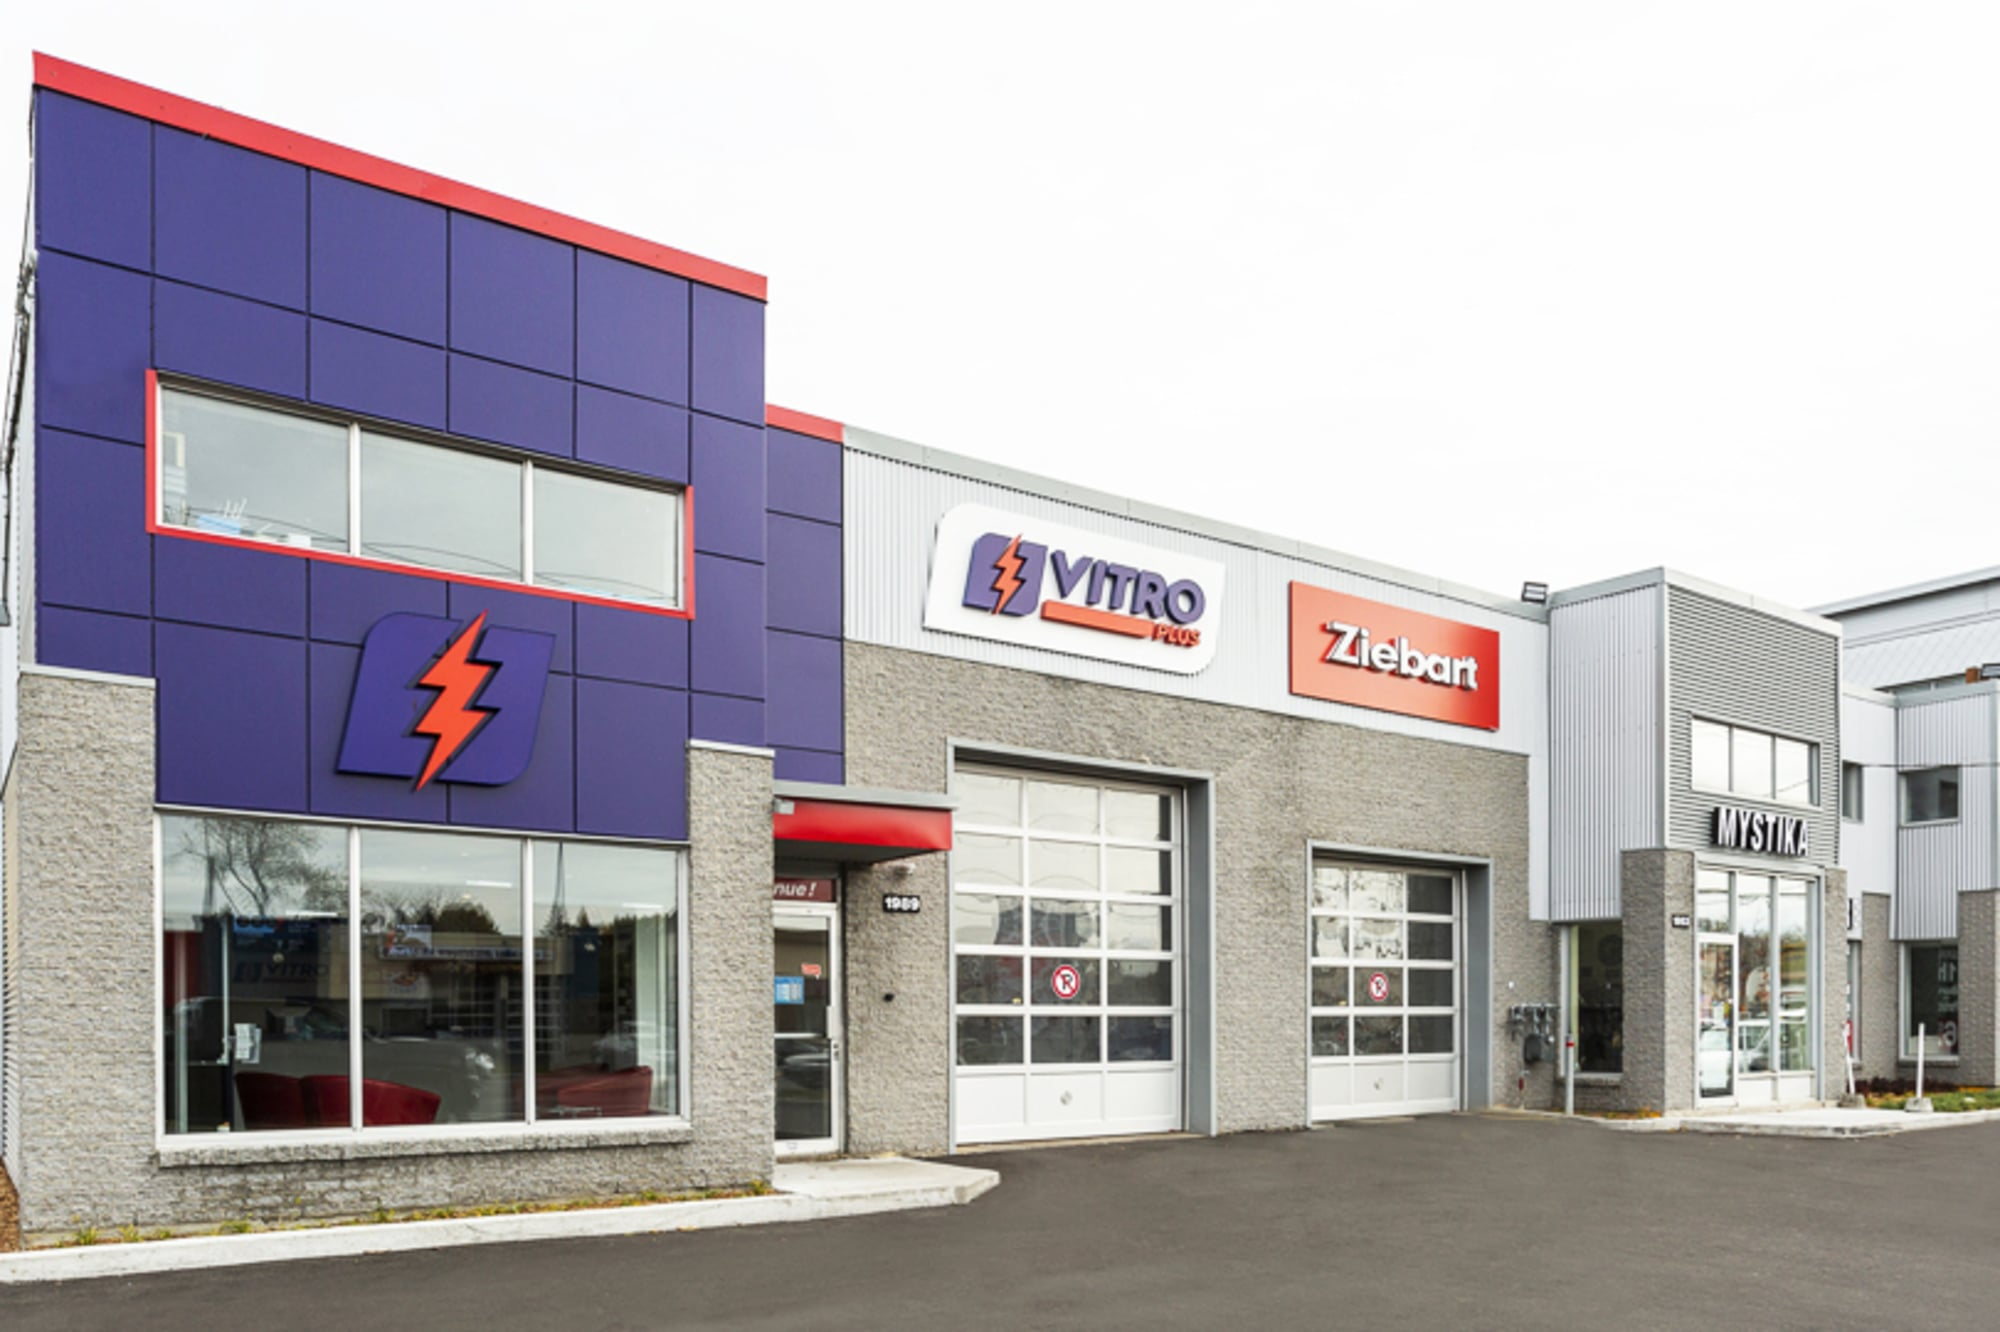 commercial building renovation - Vitro Plus